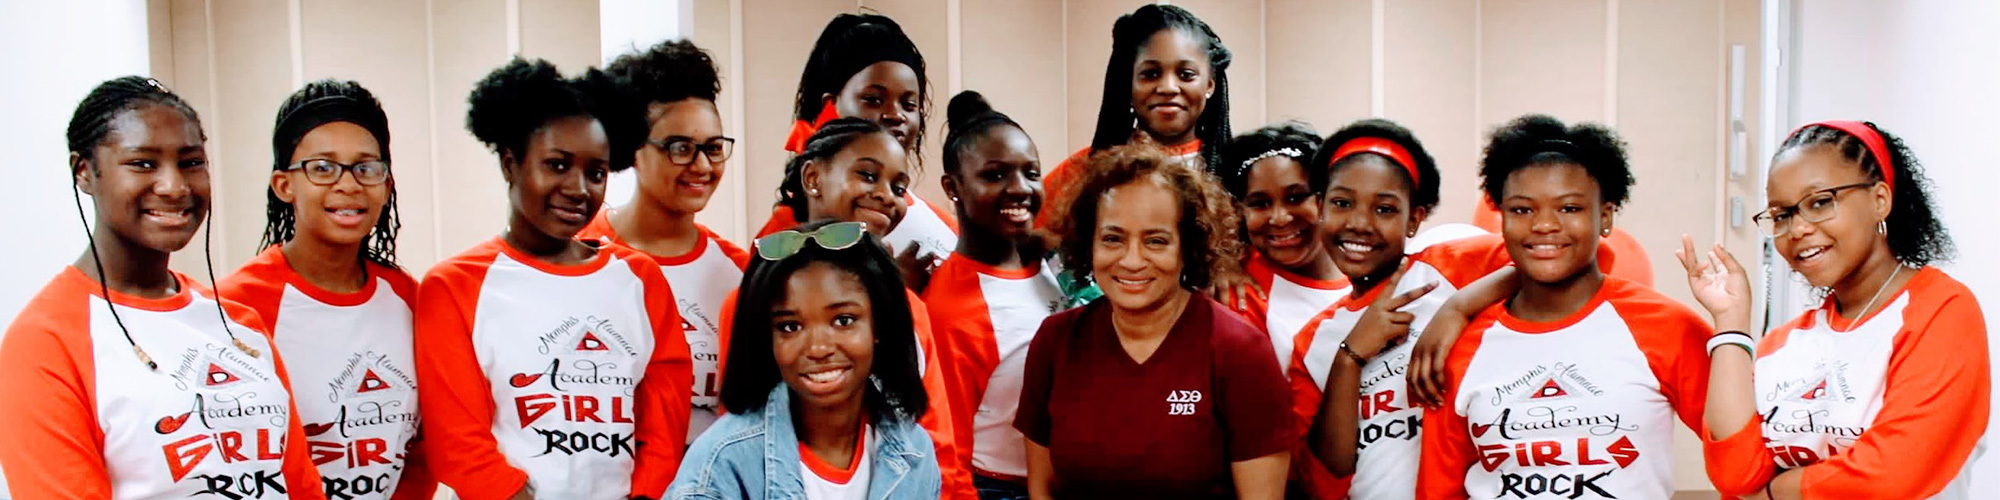 Image of Vera Hawkins with 13 young ladies wearing Memphis Alumnae Academy Girls Rock t-shirts.